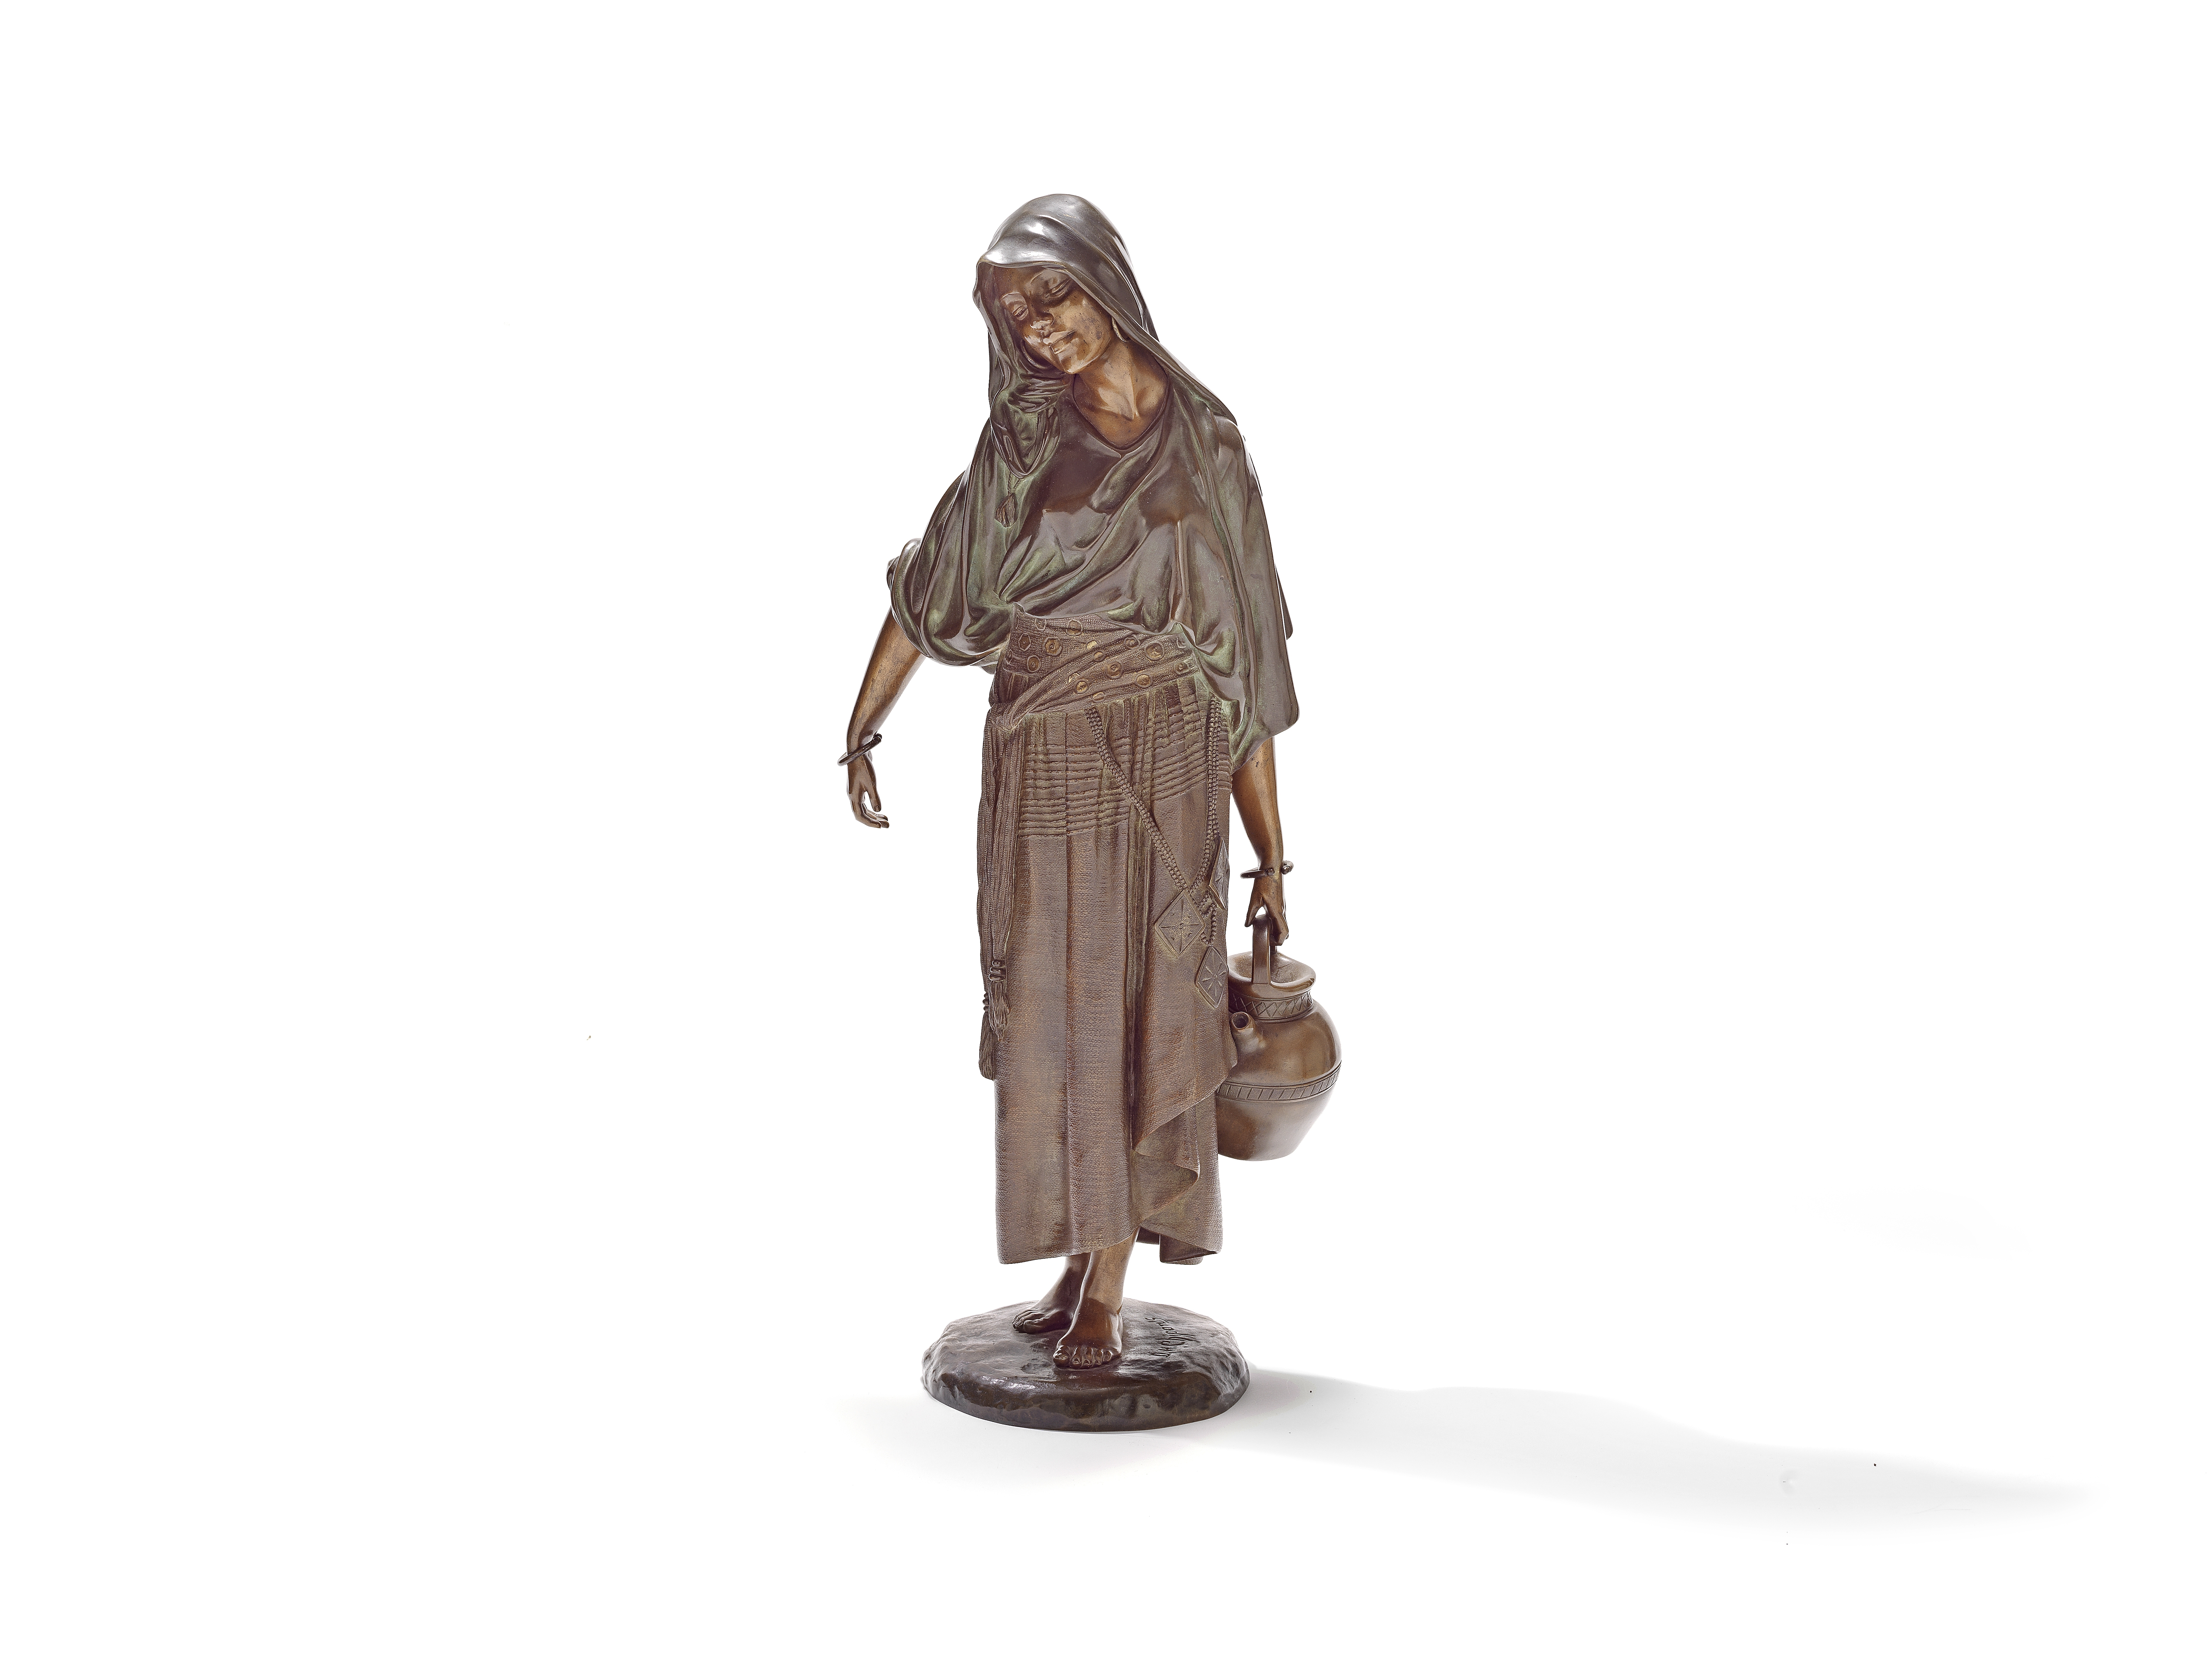 Demetre Chiparus (Romanian, 1886-1947): A patinated bronze figure of a Water carrier circa 1920